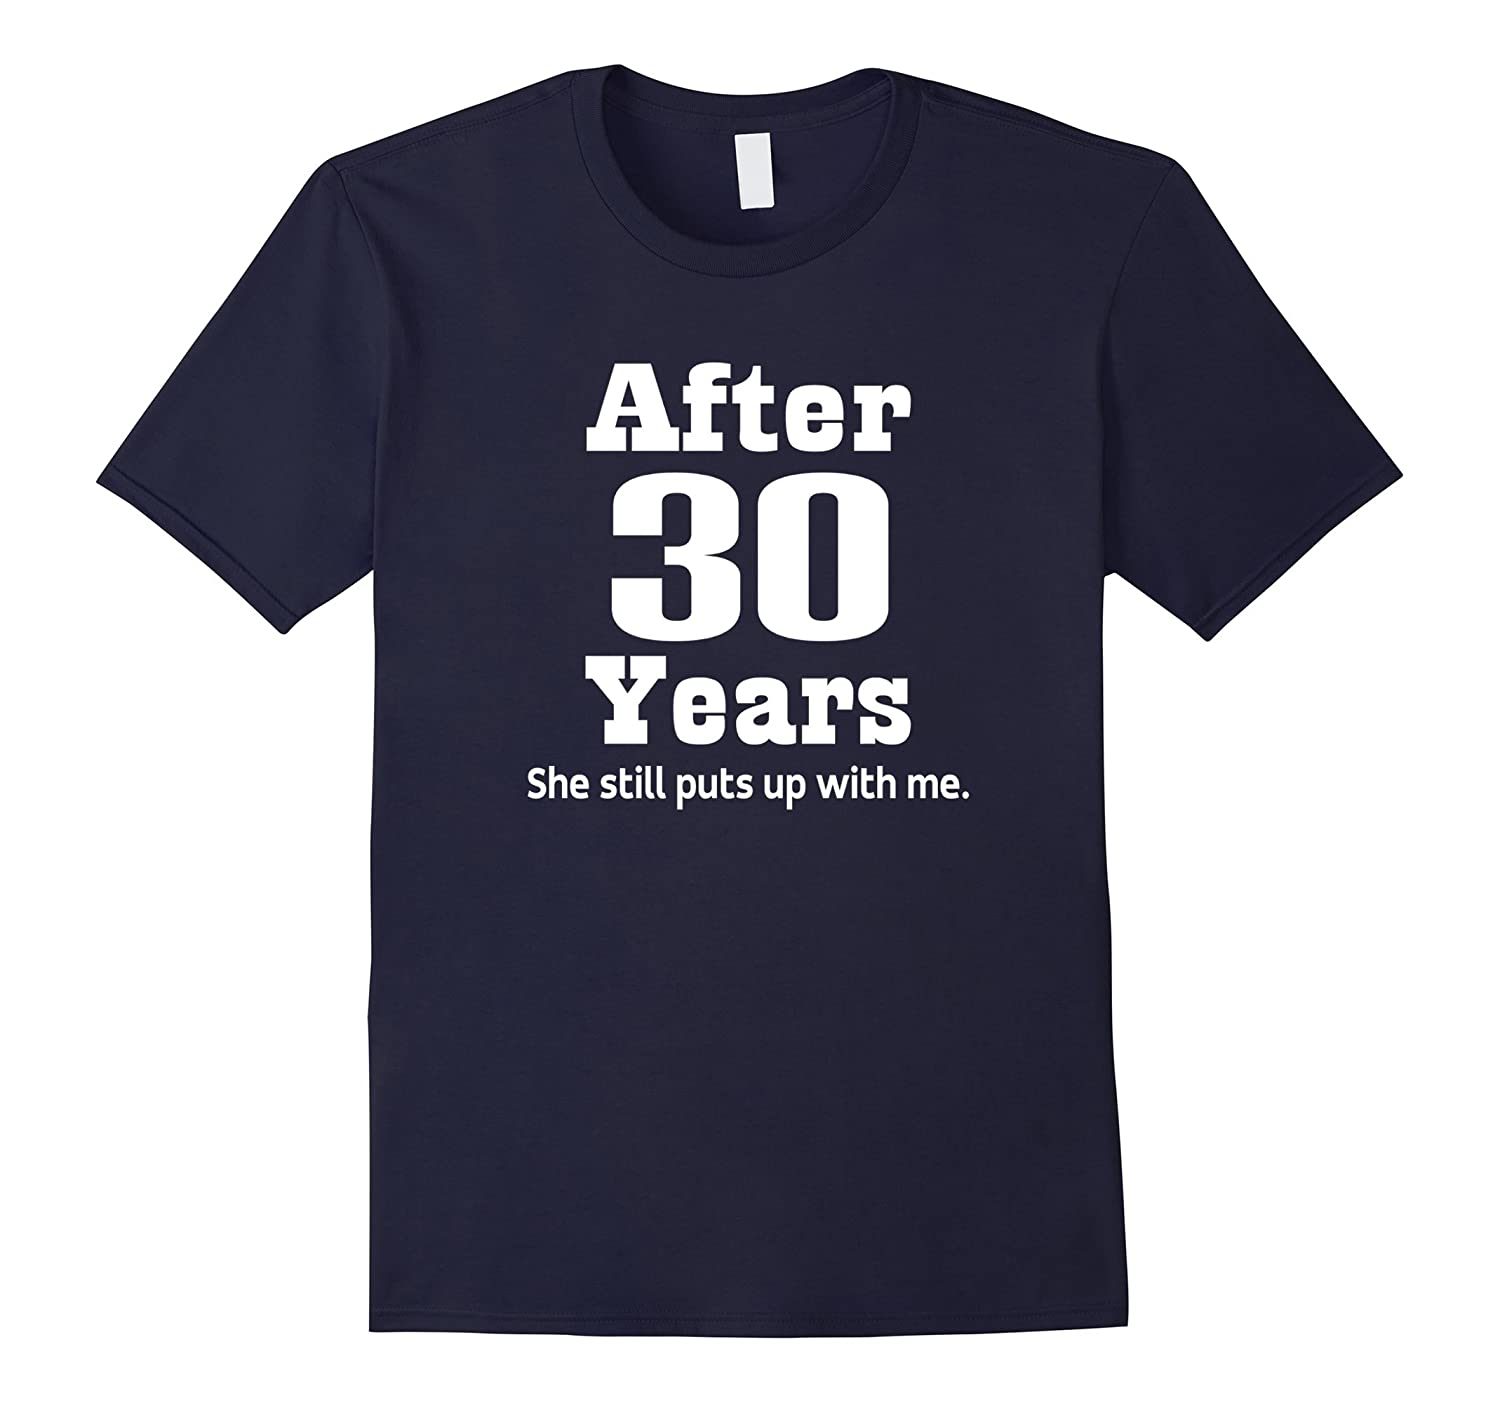 30th Anniversary T-shirt Funny Mens Party Photo Tee-ah my shirt one gift